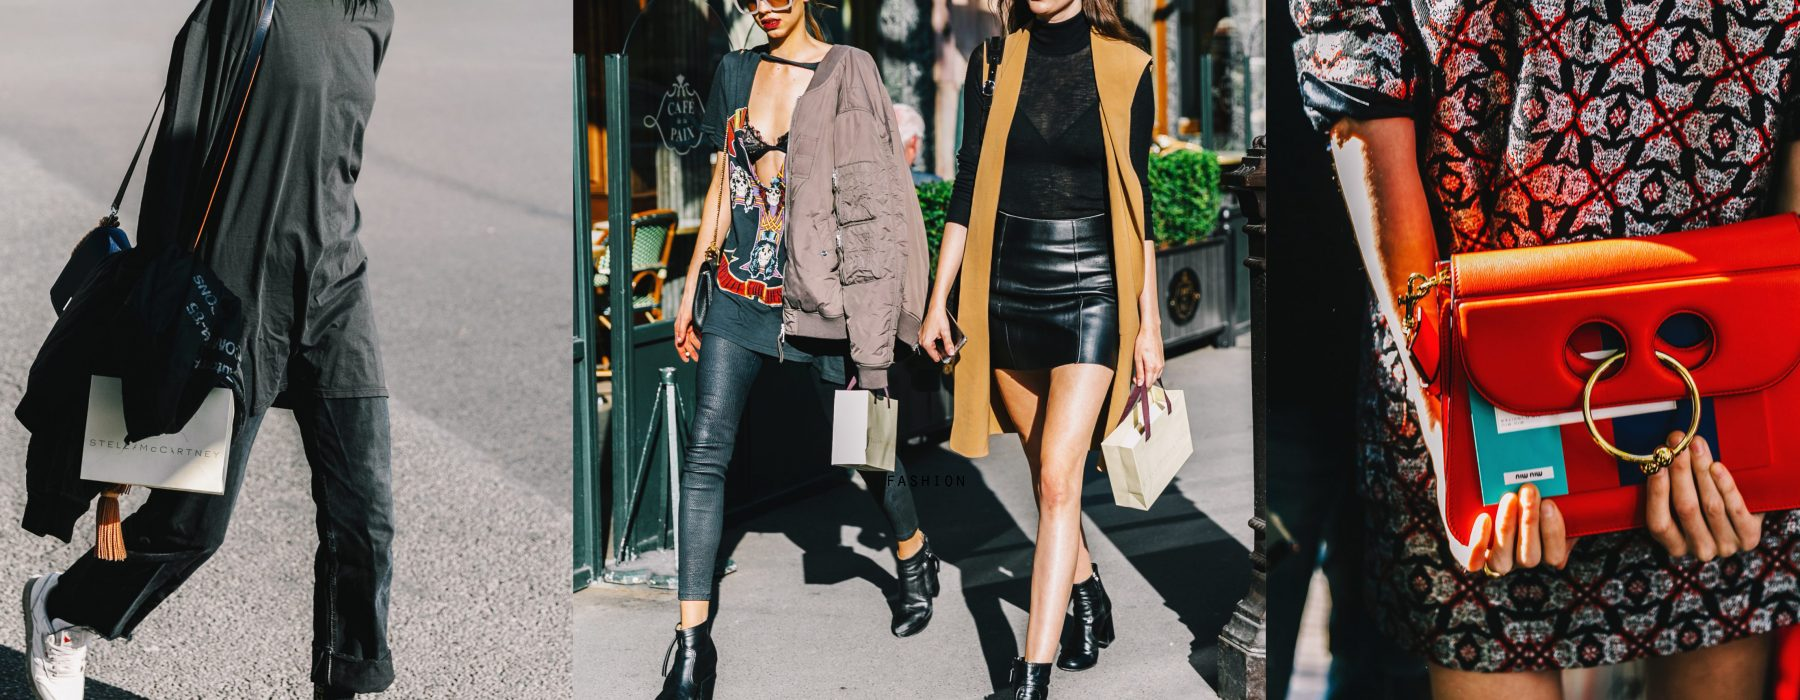 OUR TOP 10 PICKS FROM ASOS THAT WON'T BREAK THE BANK…